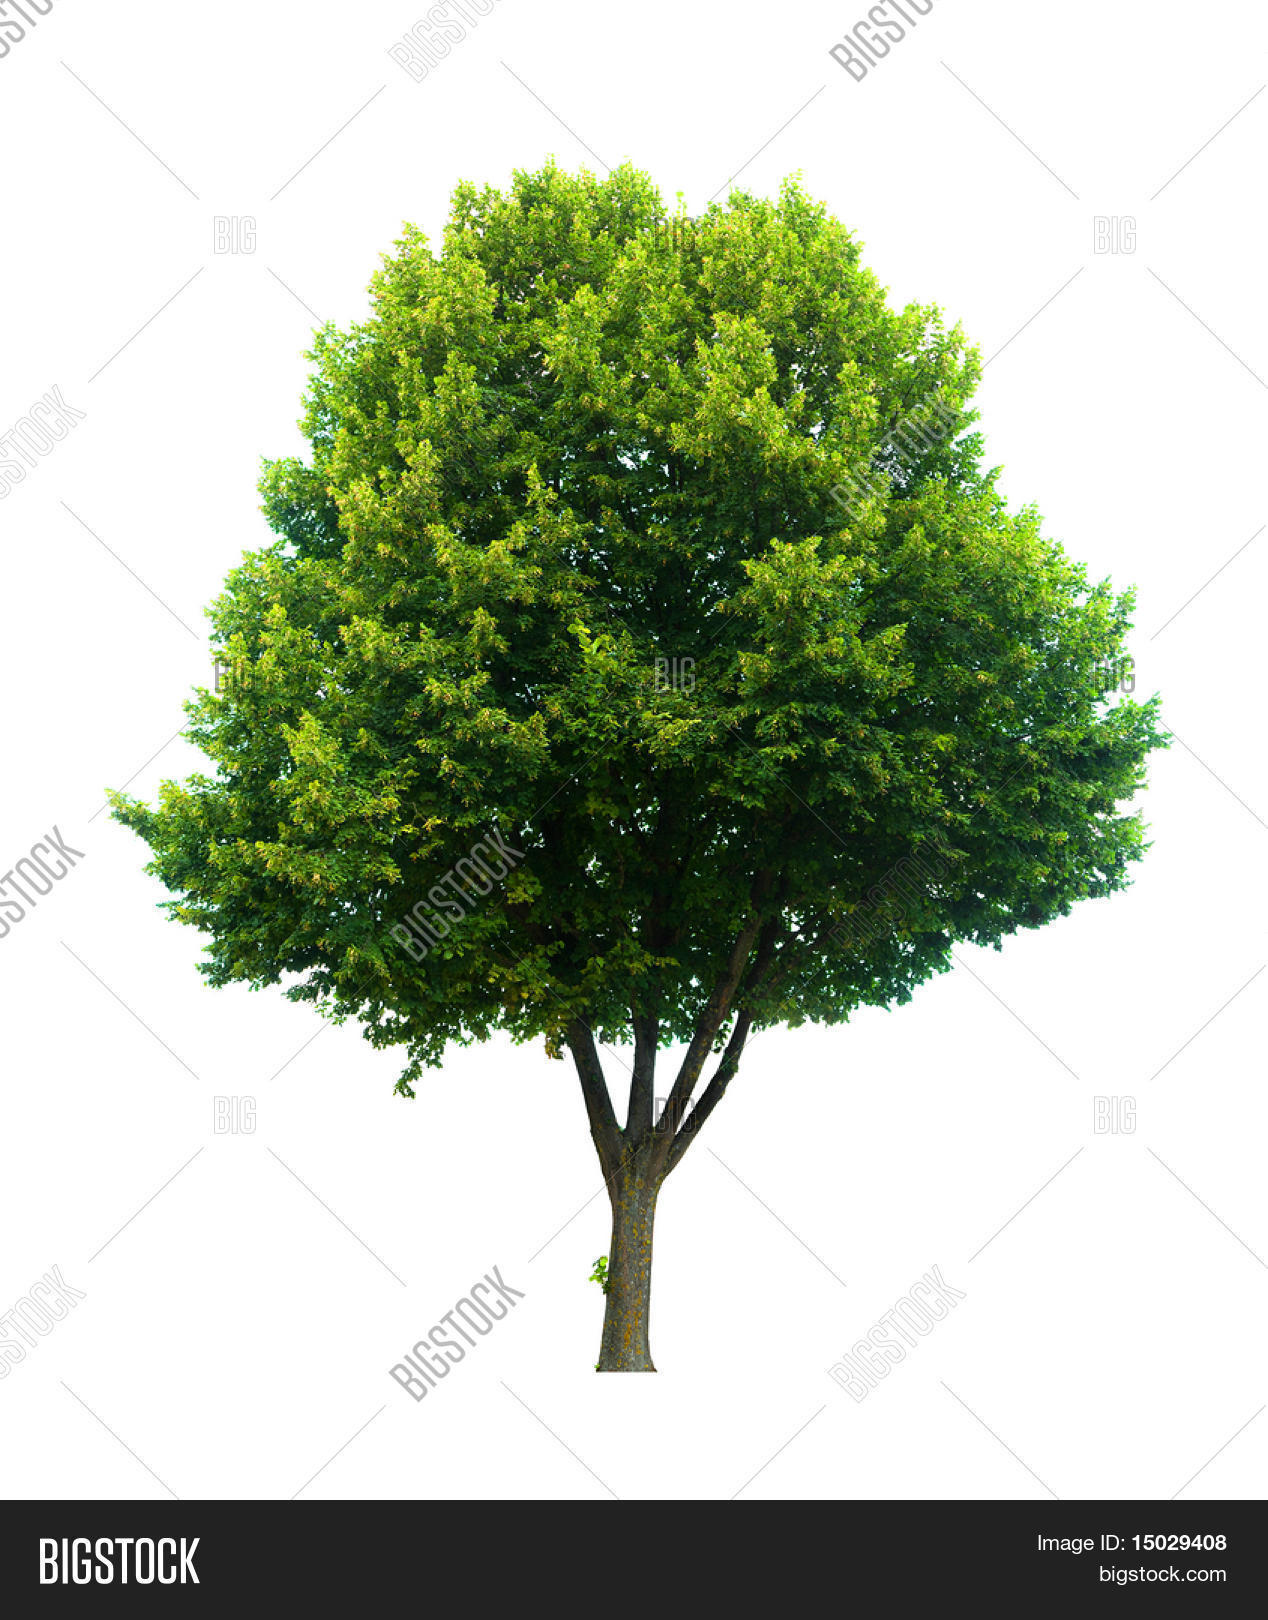 This Isolated Lime Tree Should Be A Tilia Cordita Or Platyphyllos By The Latin